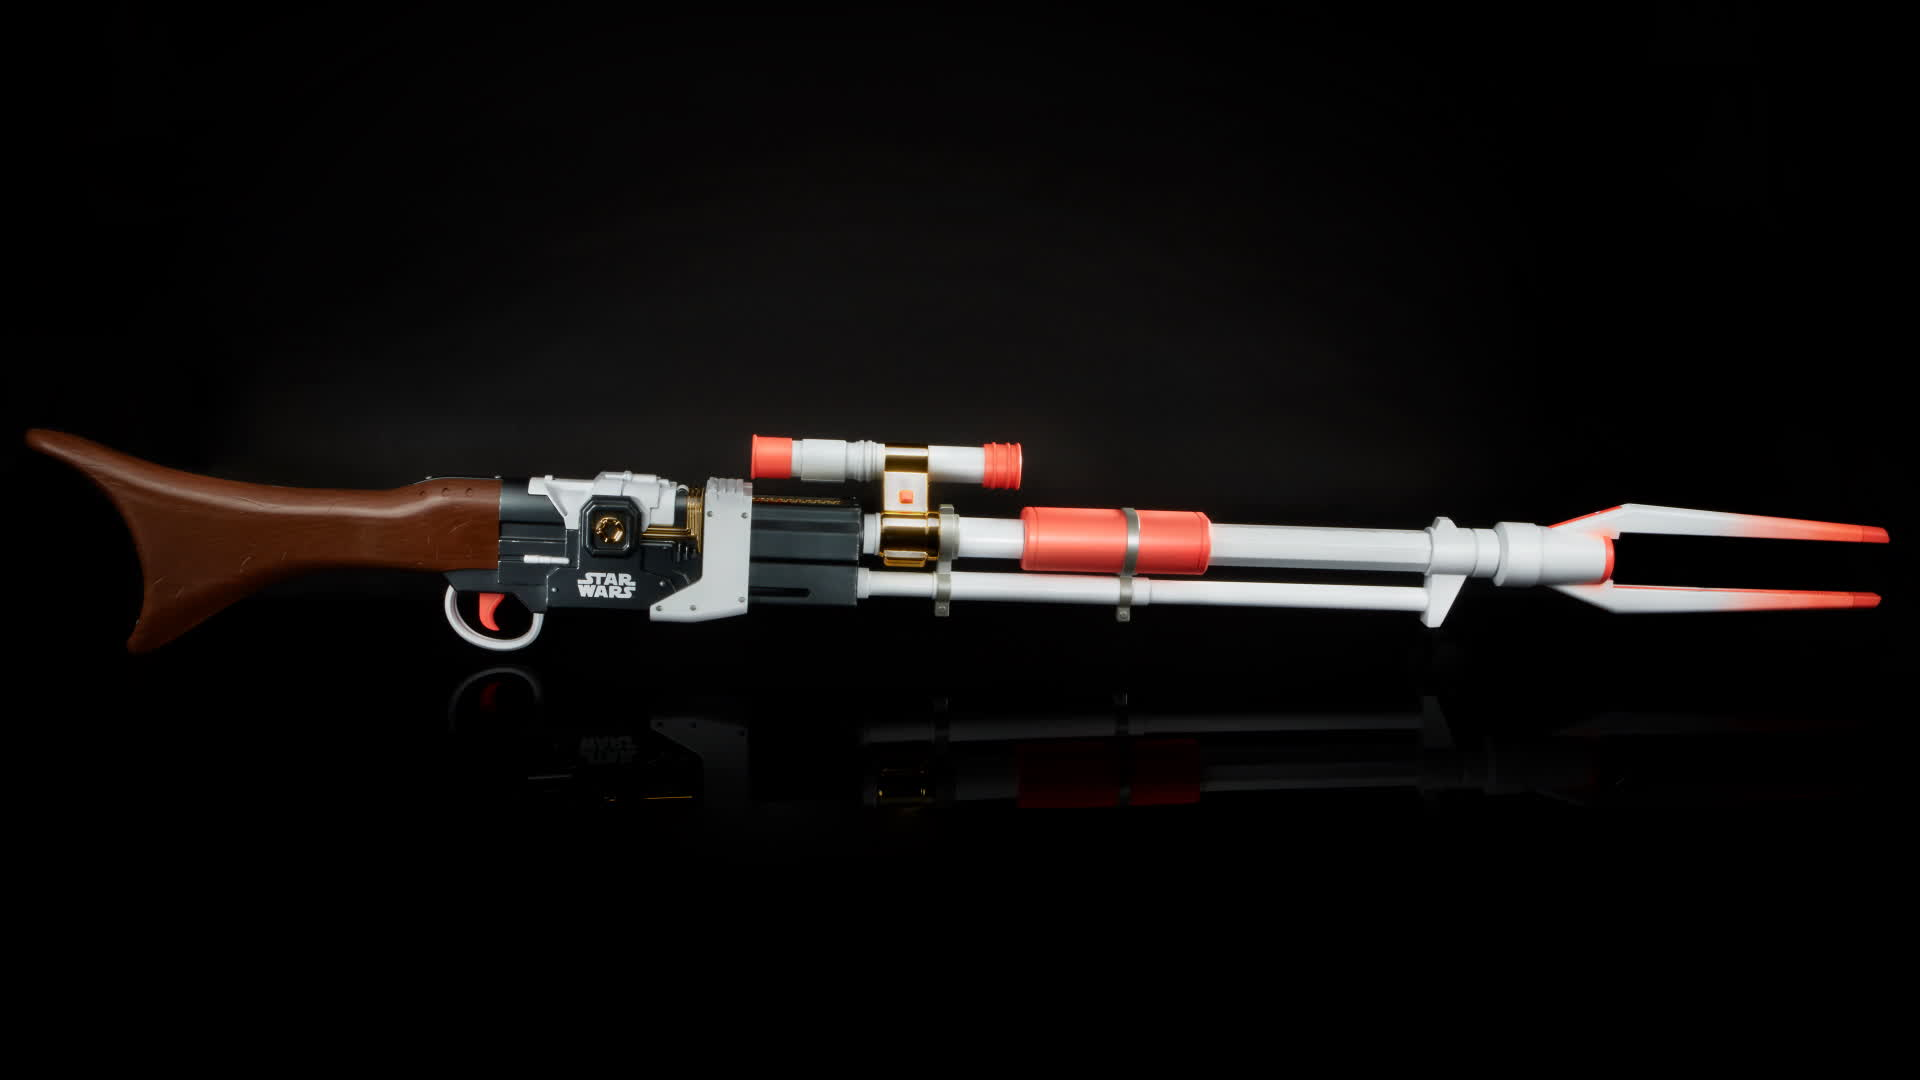 Hasbro will sell a Nerf replica of The Mandalorian's unique Amban phase-pulse blaster rifle